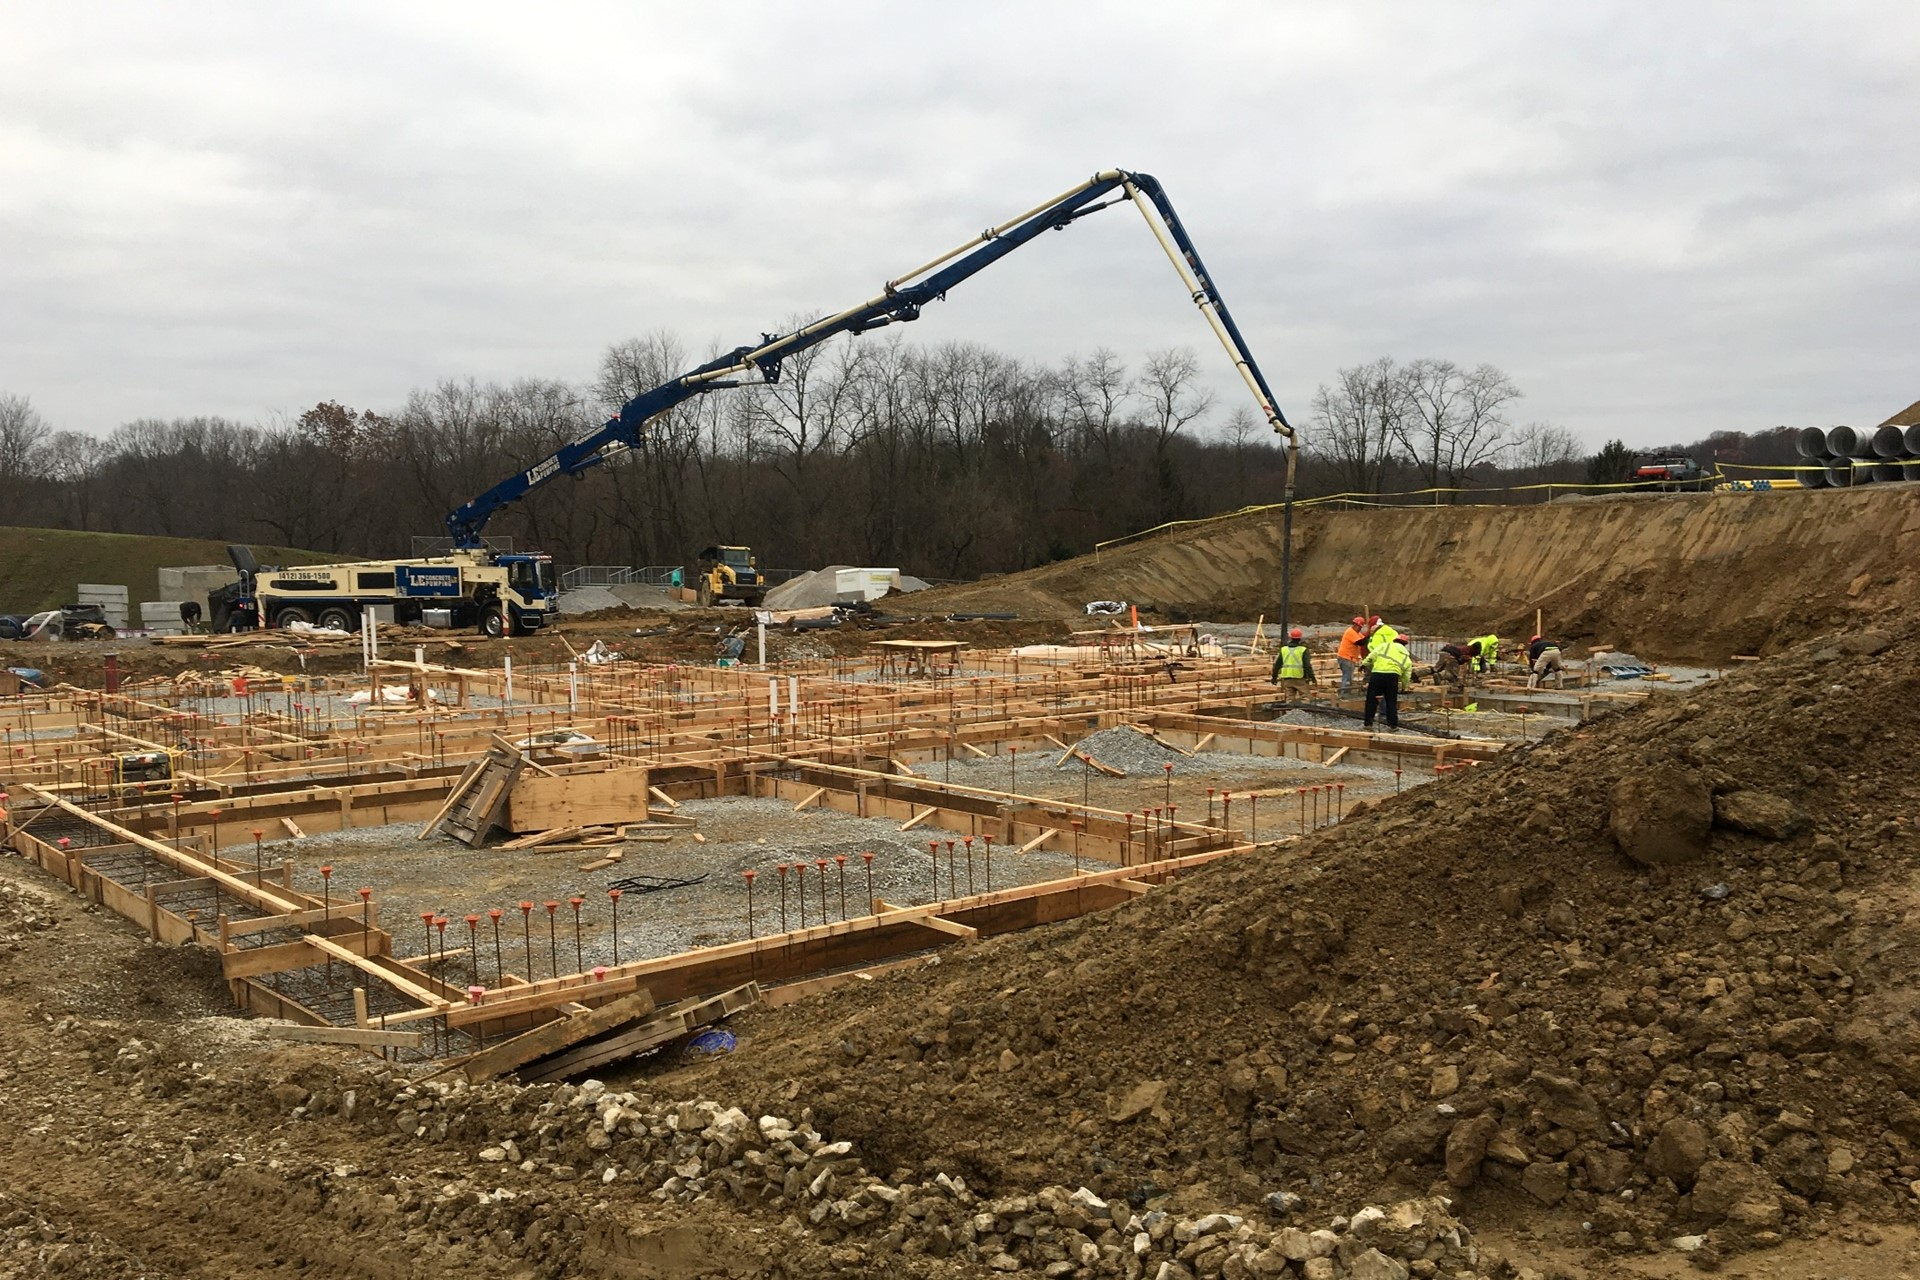 Pouring concrete at the new school construction site